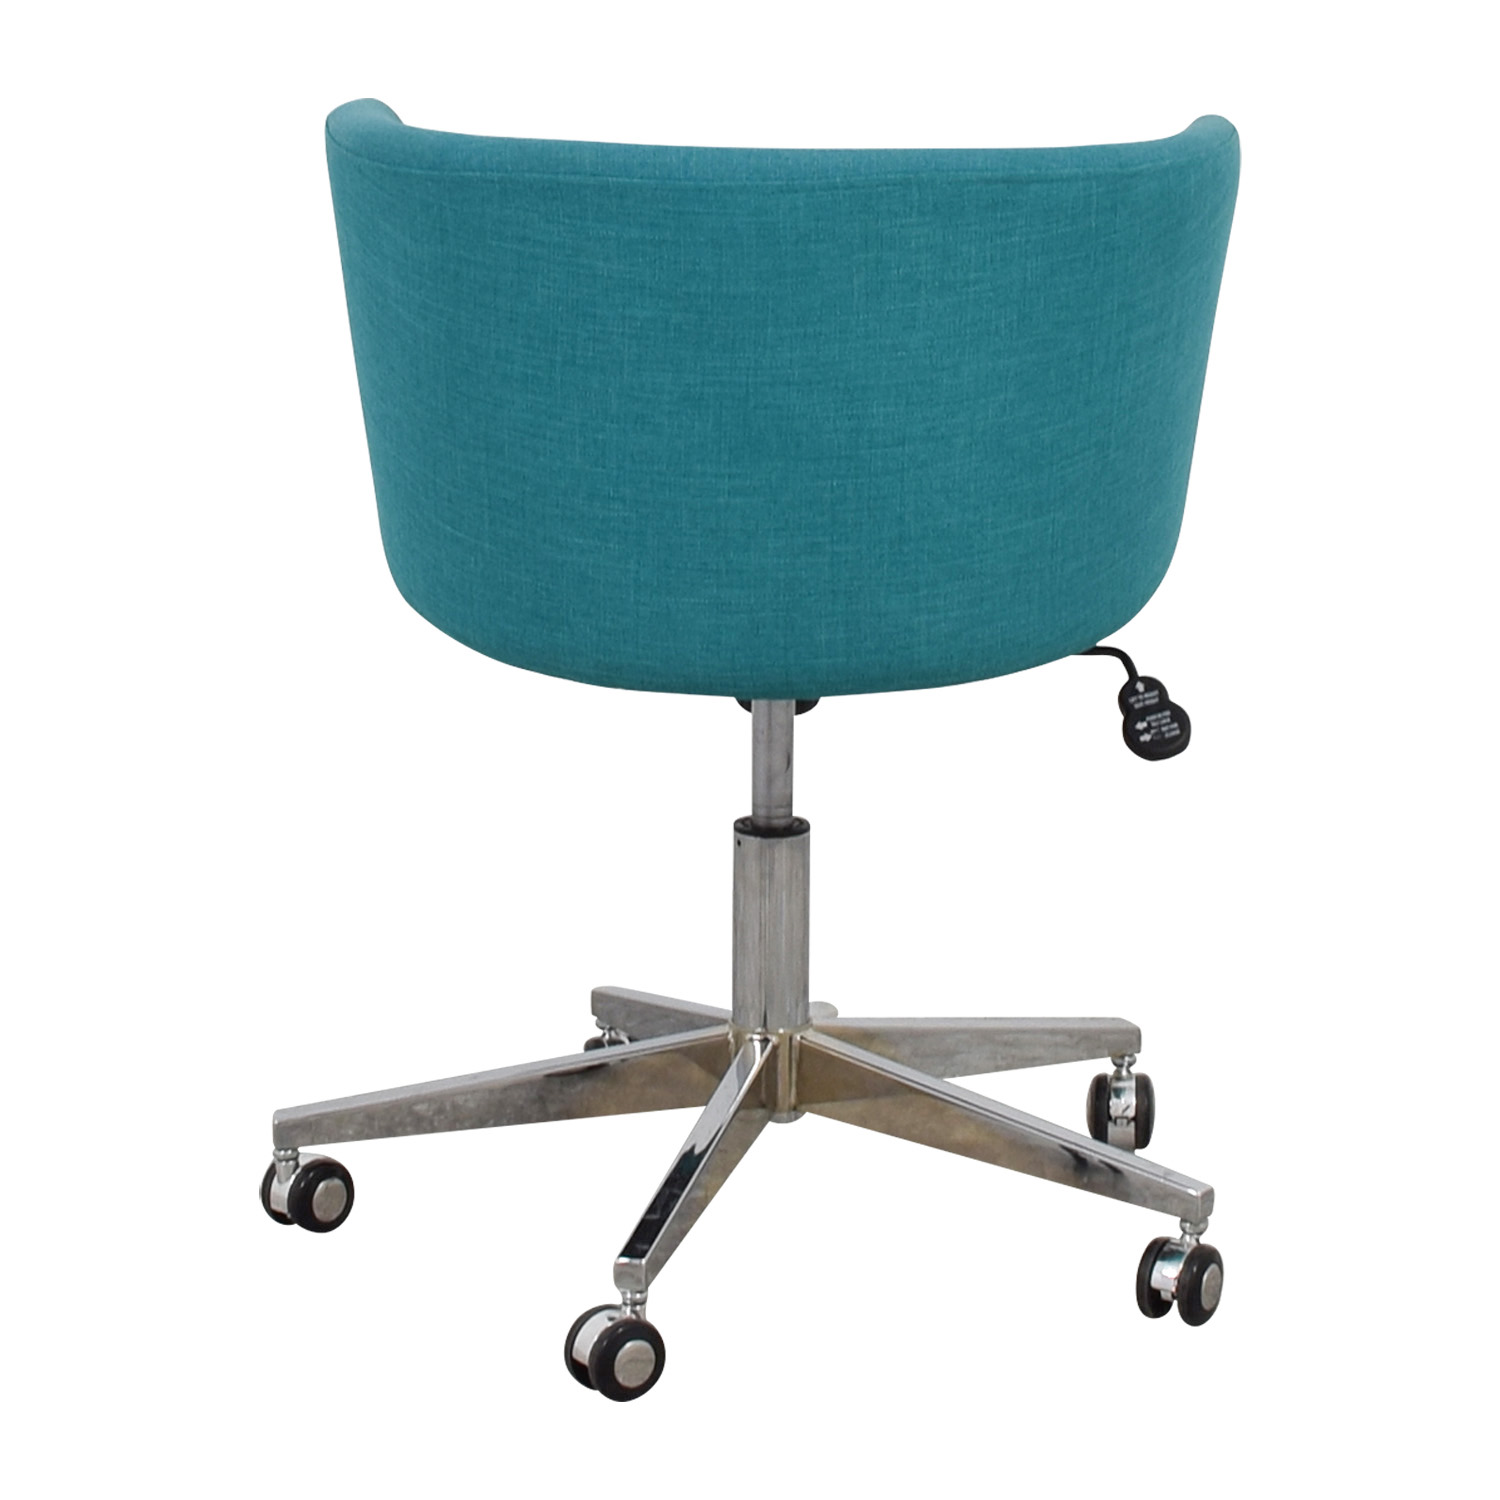 37% OFF CB2 CB2 Teal Desk Chair with Castors Chairs